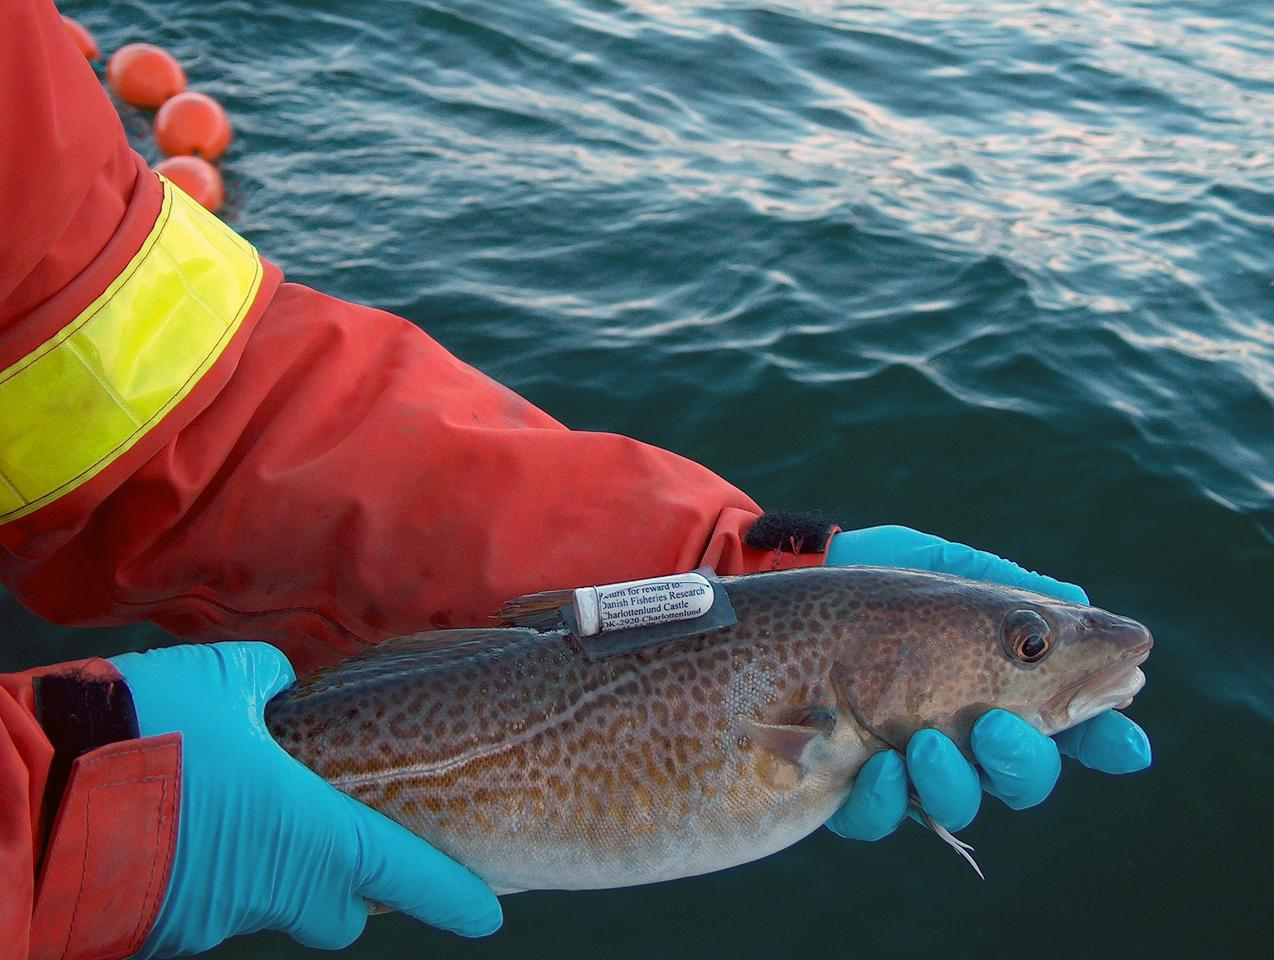 By tagging cod fish with data logging thermometers, European scientists have attained a better understanding of how the fish will tolerate rising ocean temperatures (Photo: Stefan Neuenfeldt, DTU Aqua)